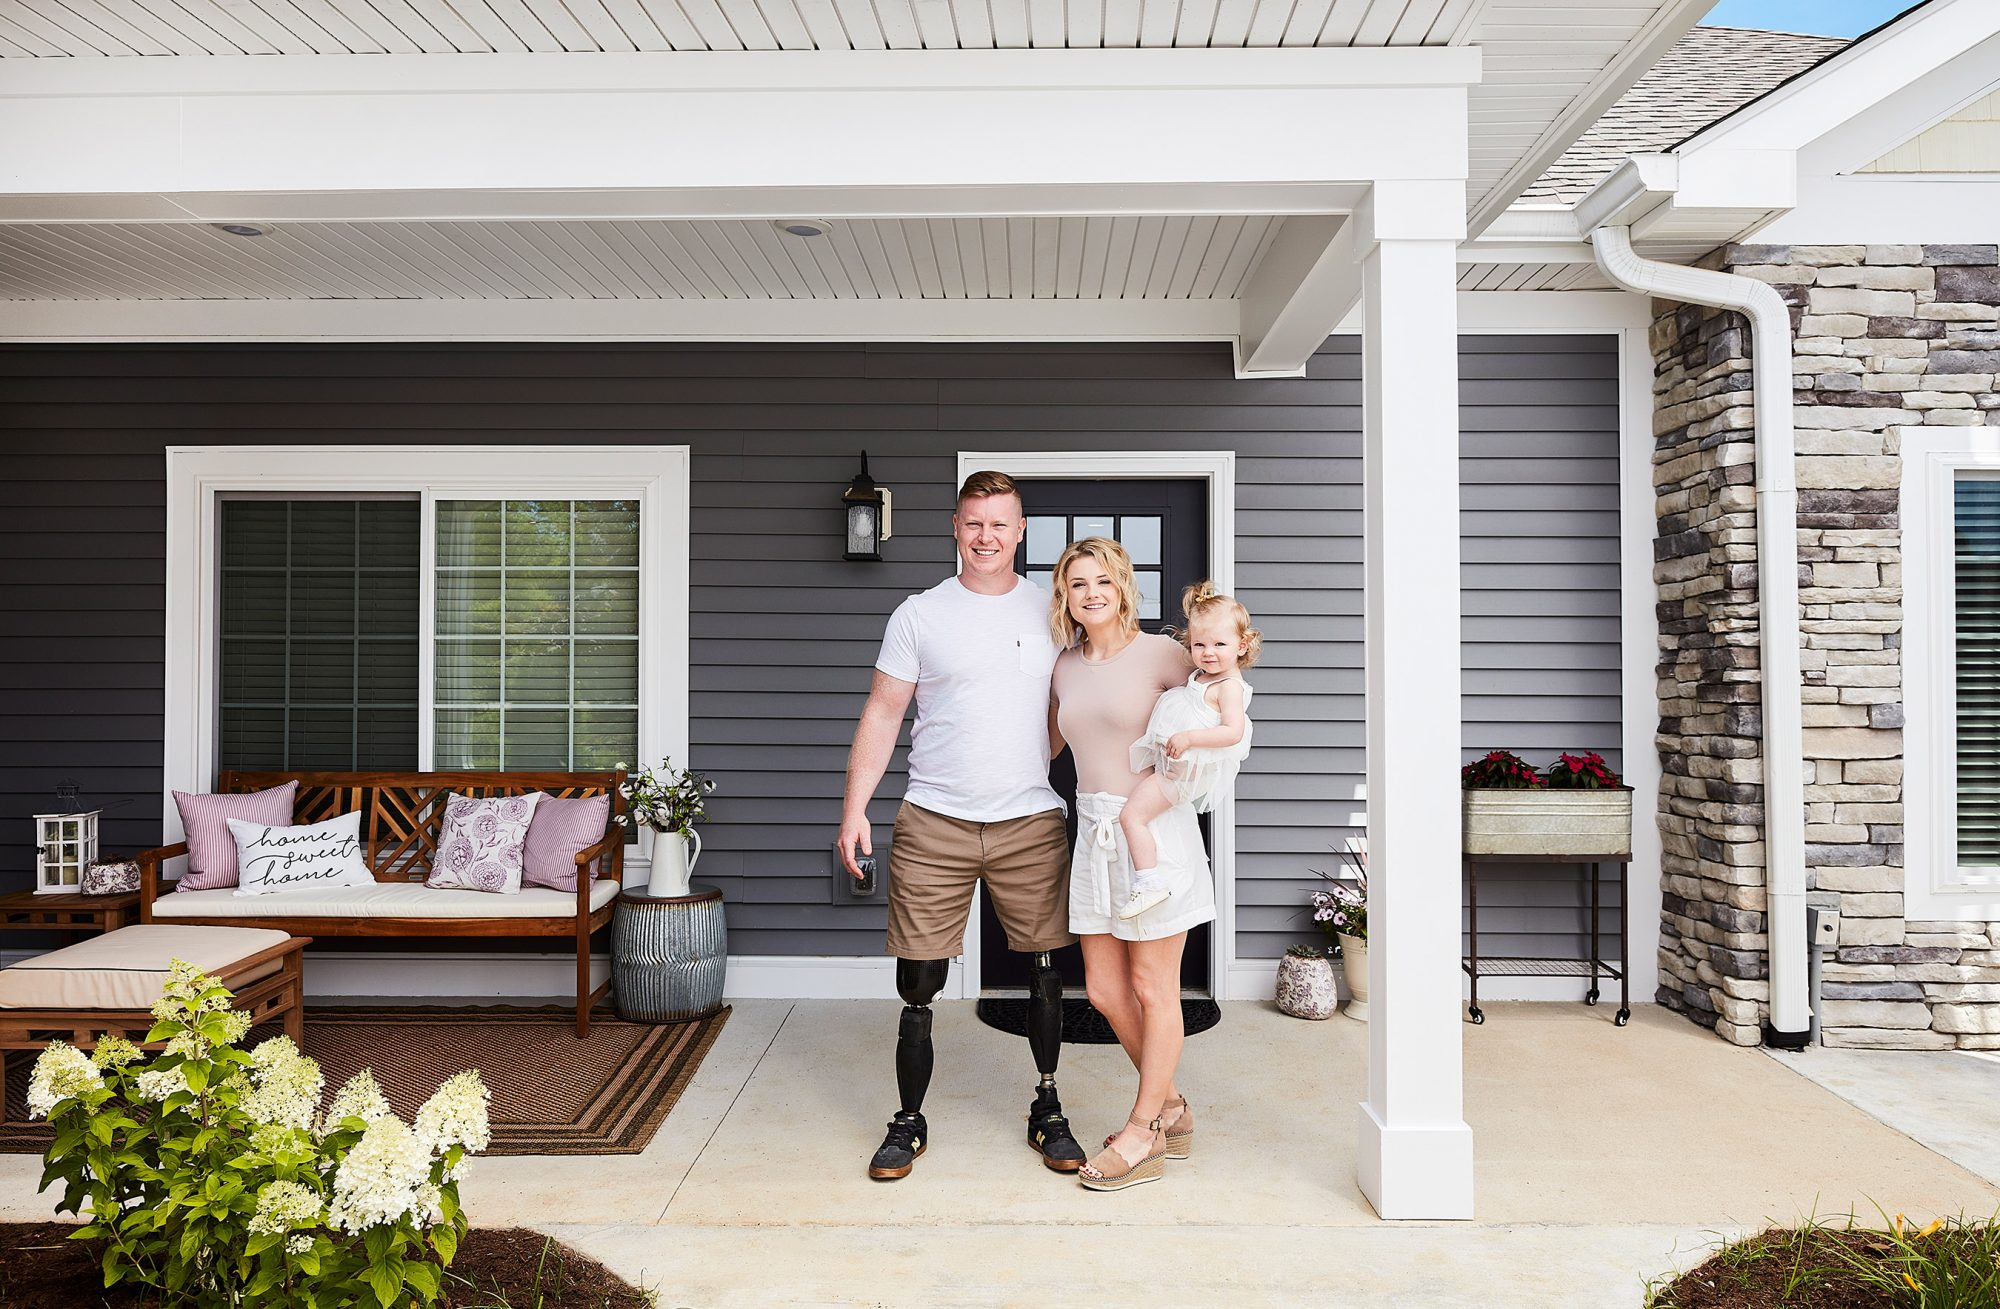 Homes for Our Troops x Wayfair House